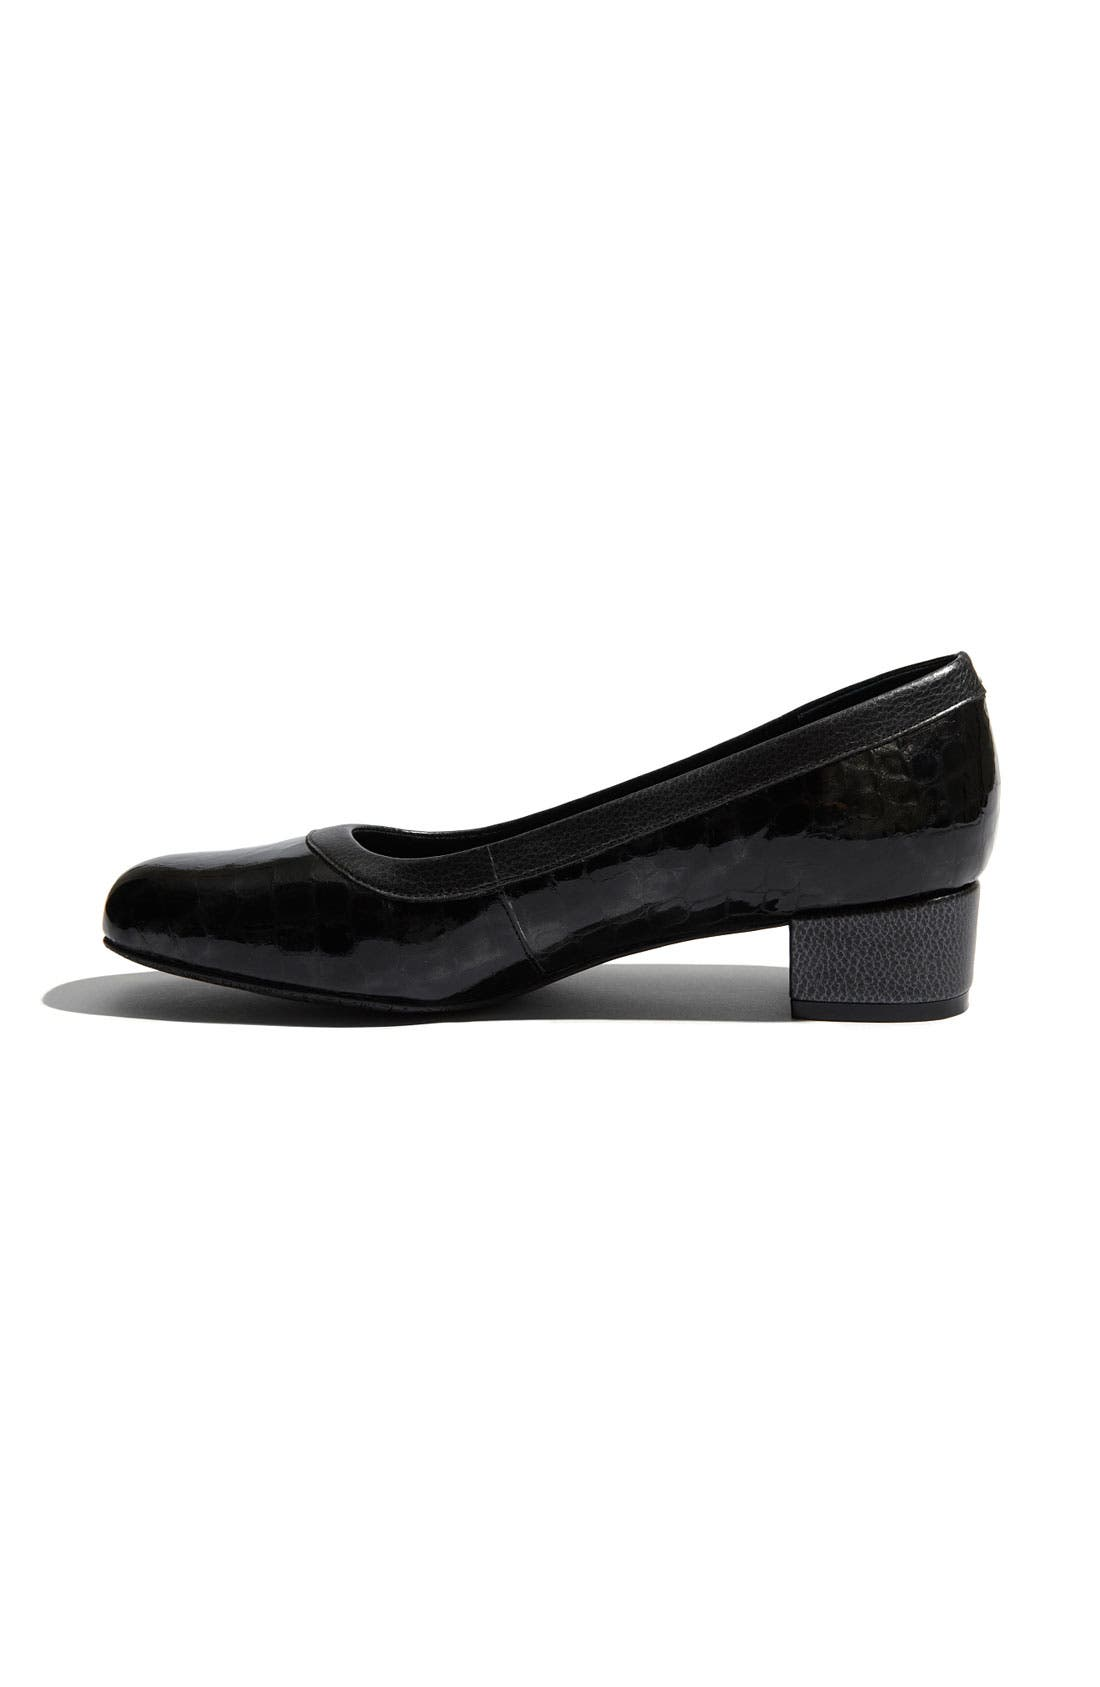 Alternate Image 2  - Trotters 'Dora' Pump